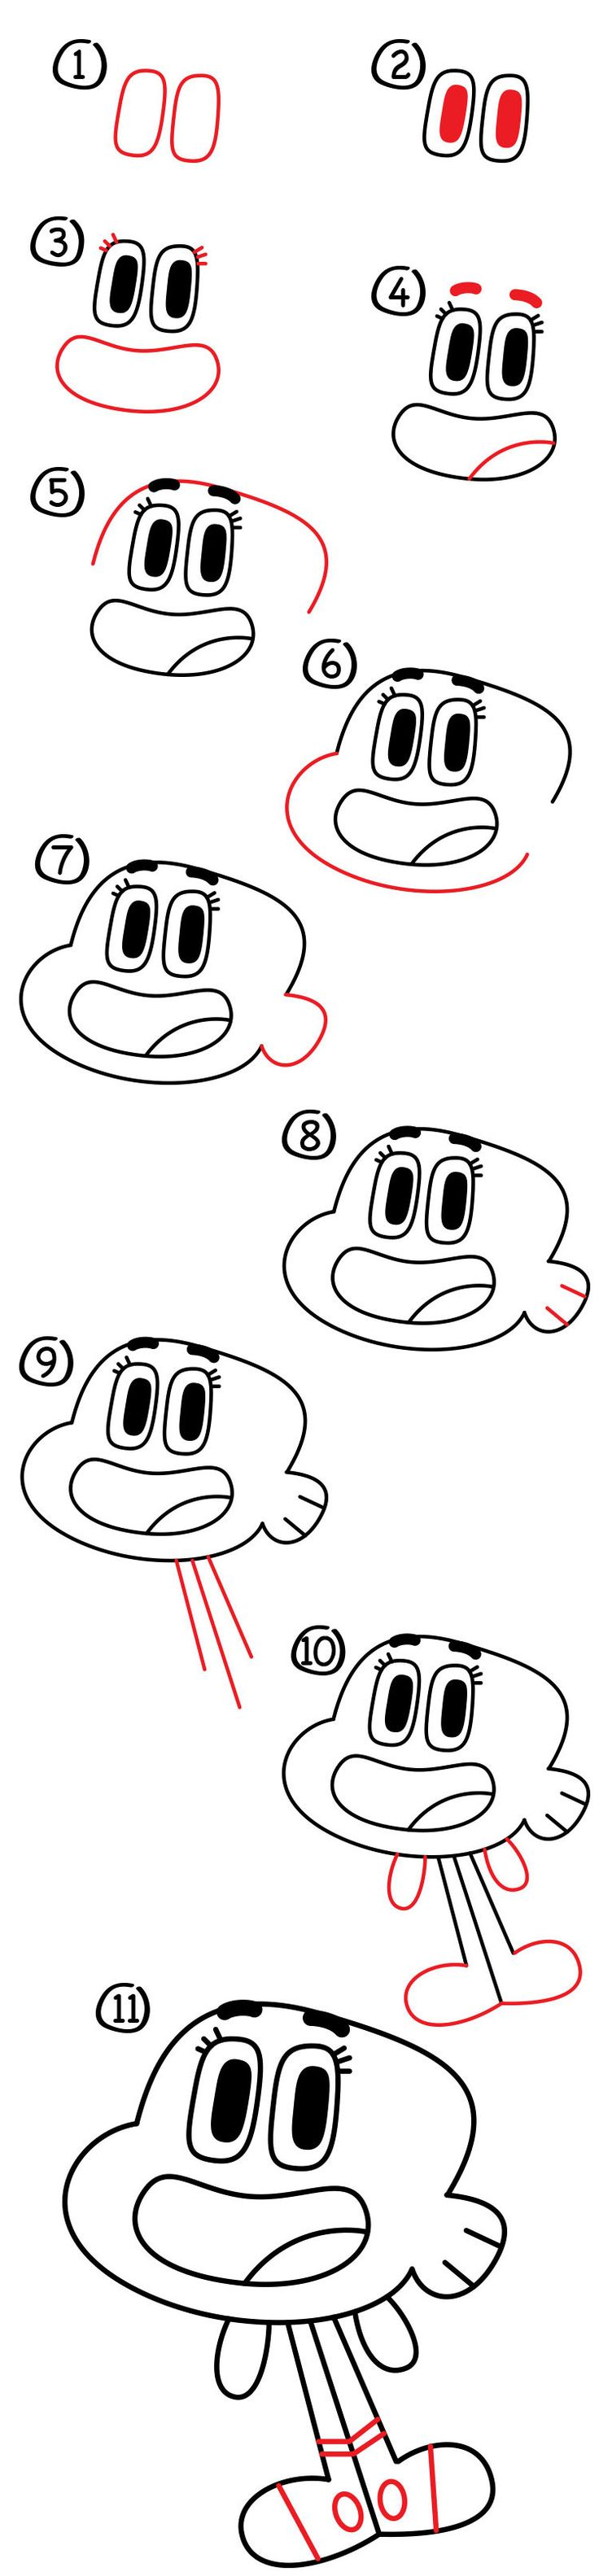 Learn how to draw Darwin from The Amazing World Of Gumball! He's easy to draw, just follow along with us. All you need is something to draw with!